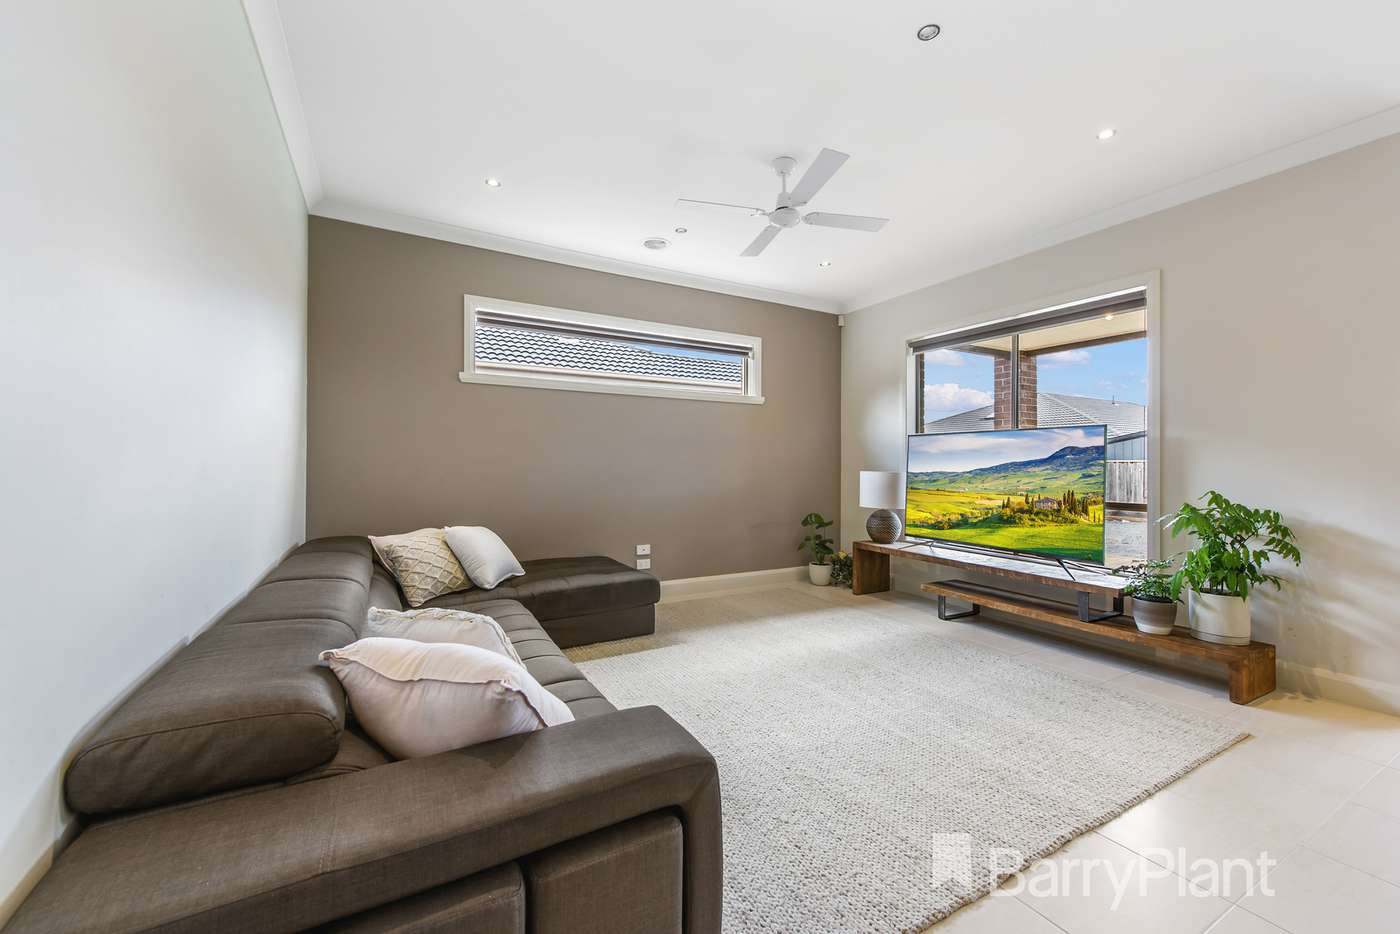 Fifth view of Homely house listing, 17 Chanticleer Avenue, Harkness VIC 3337